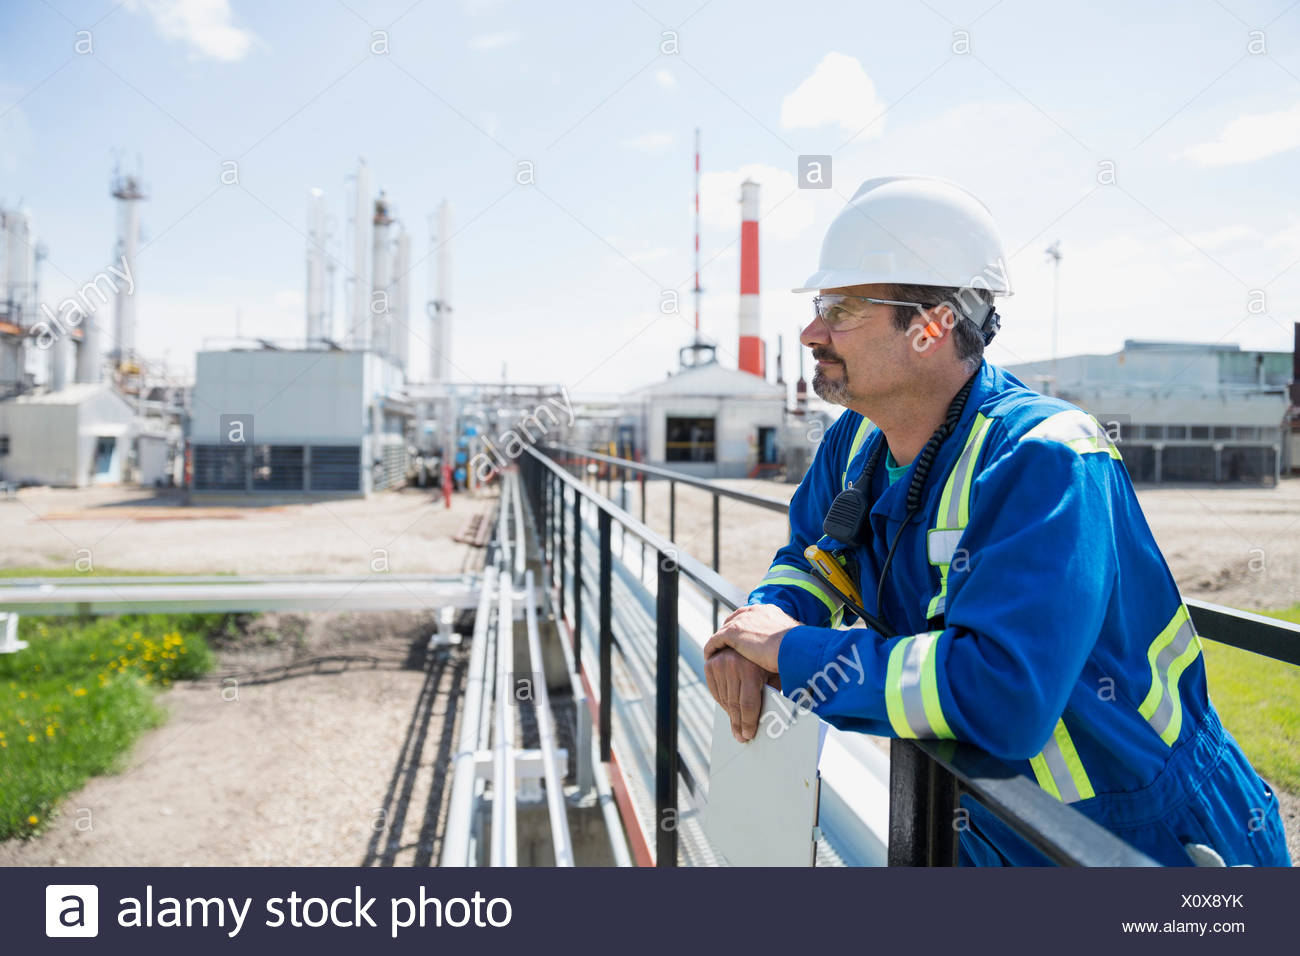 Male worker on platform outside gas plant - Stock Image